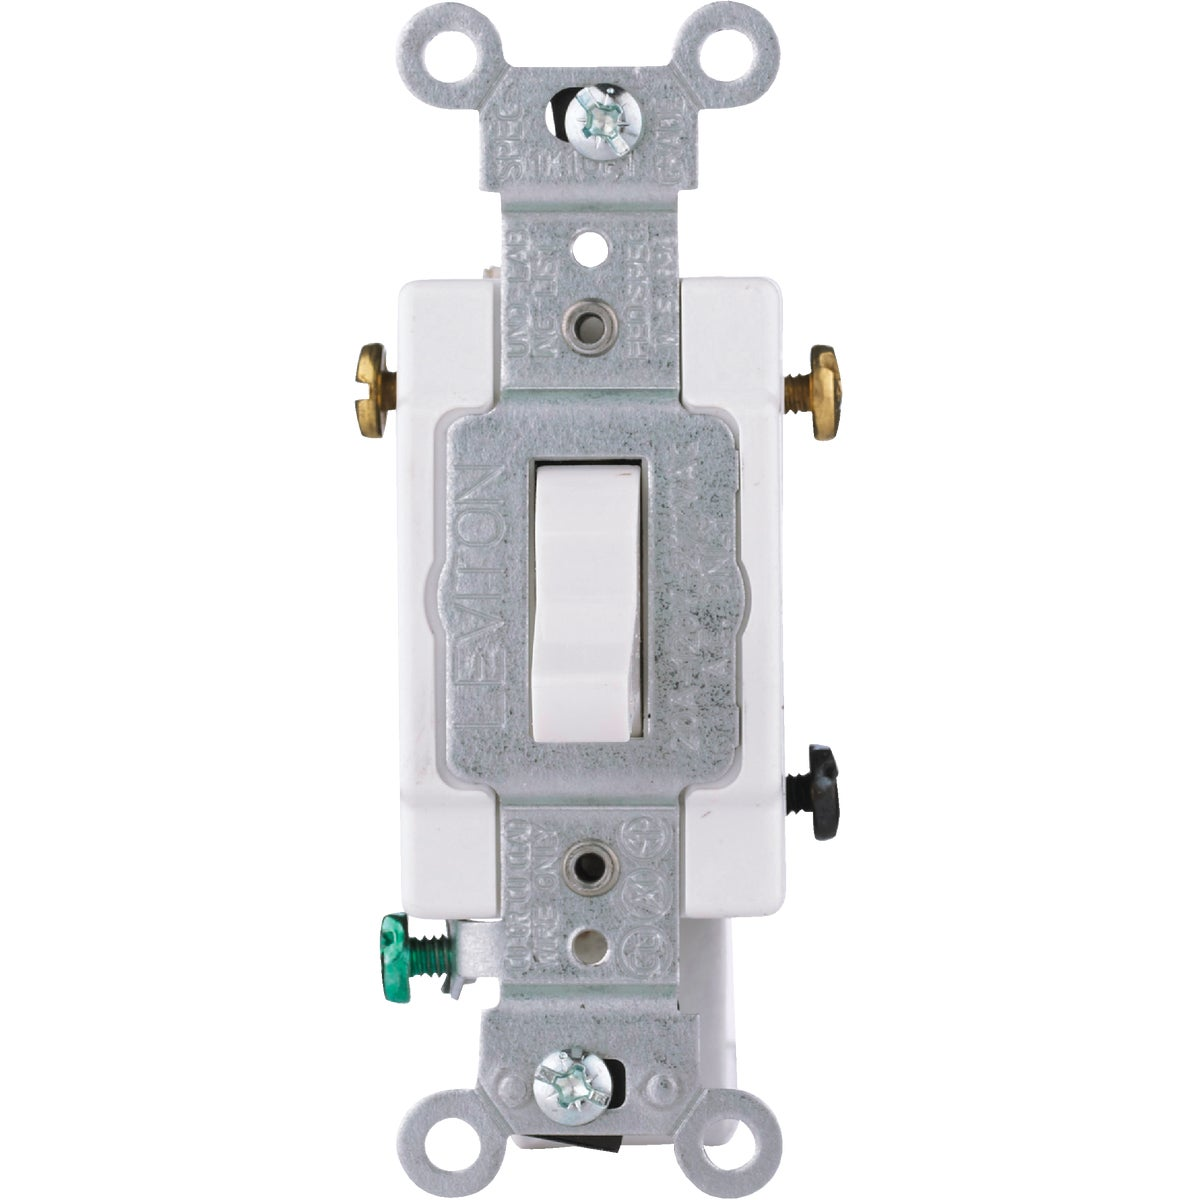 WHT 3-WAY GRND SWITCH - S04-CS320-2WS by Leviton Mfg Co